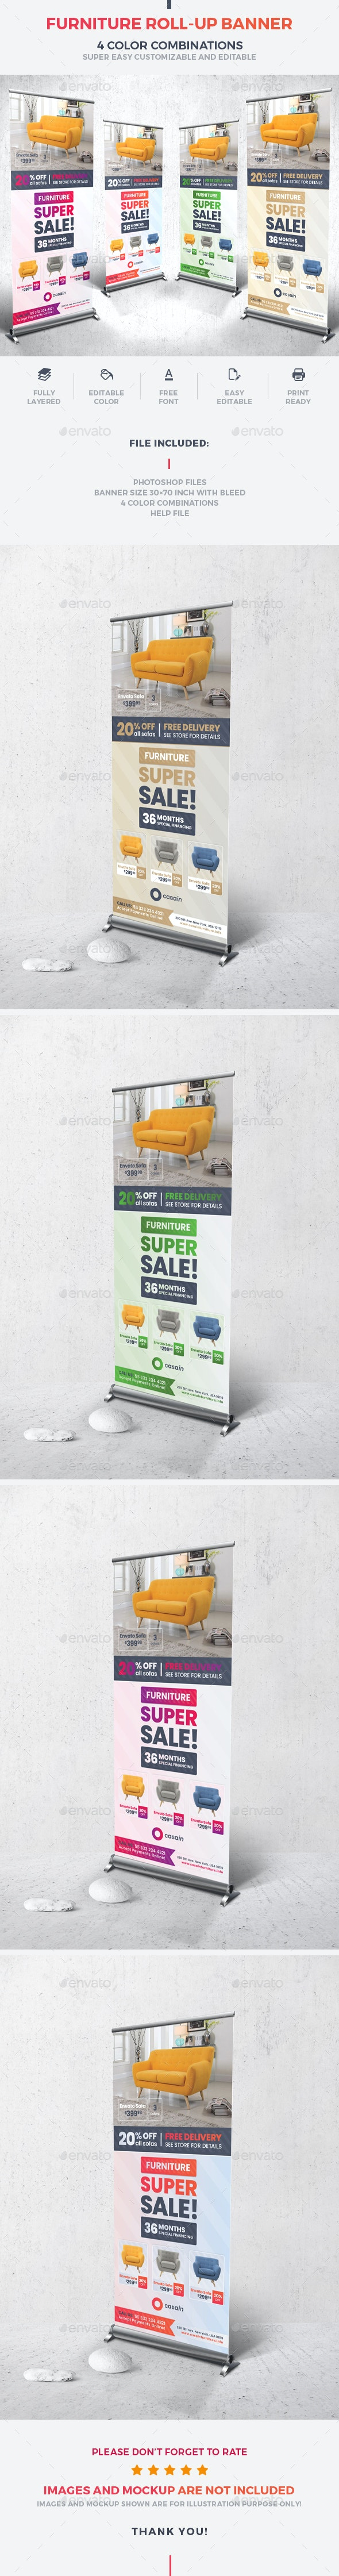 Furniture Roll-Up Banner - Signage Print Templates